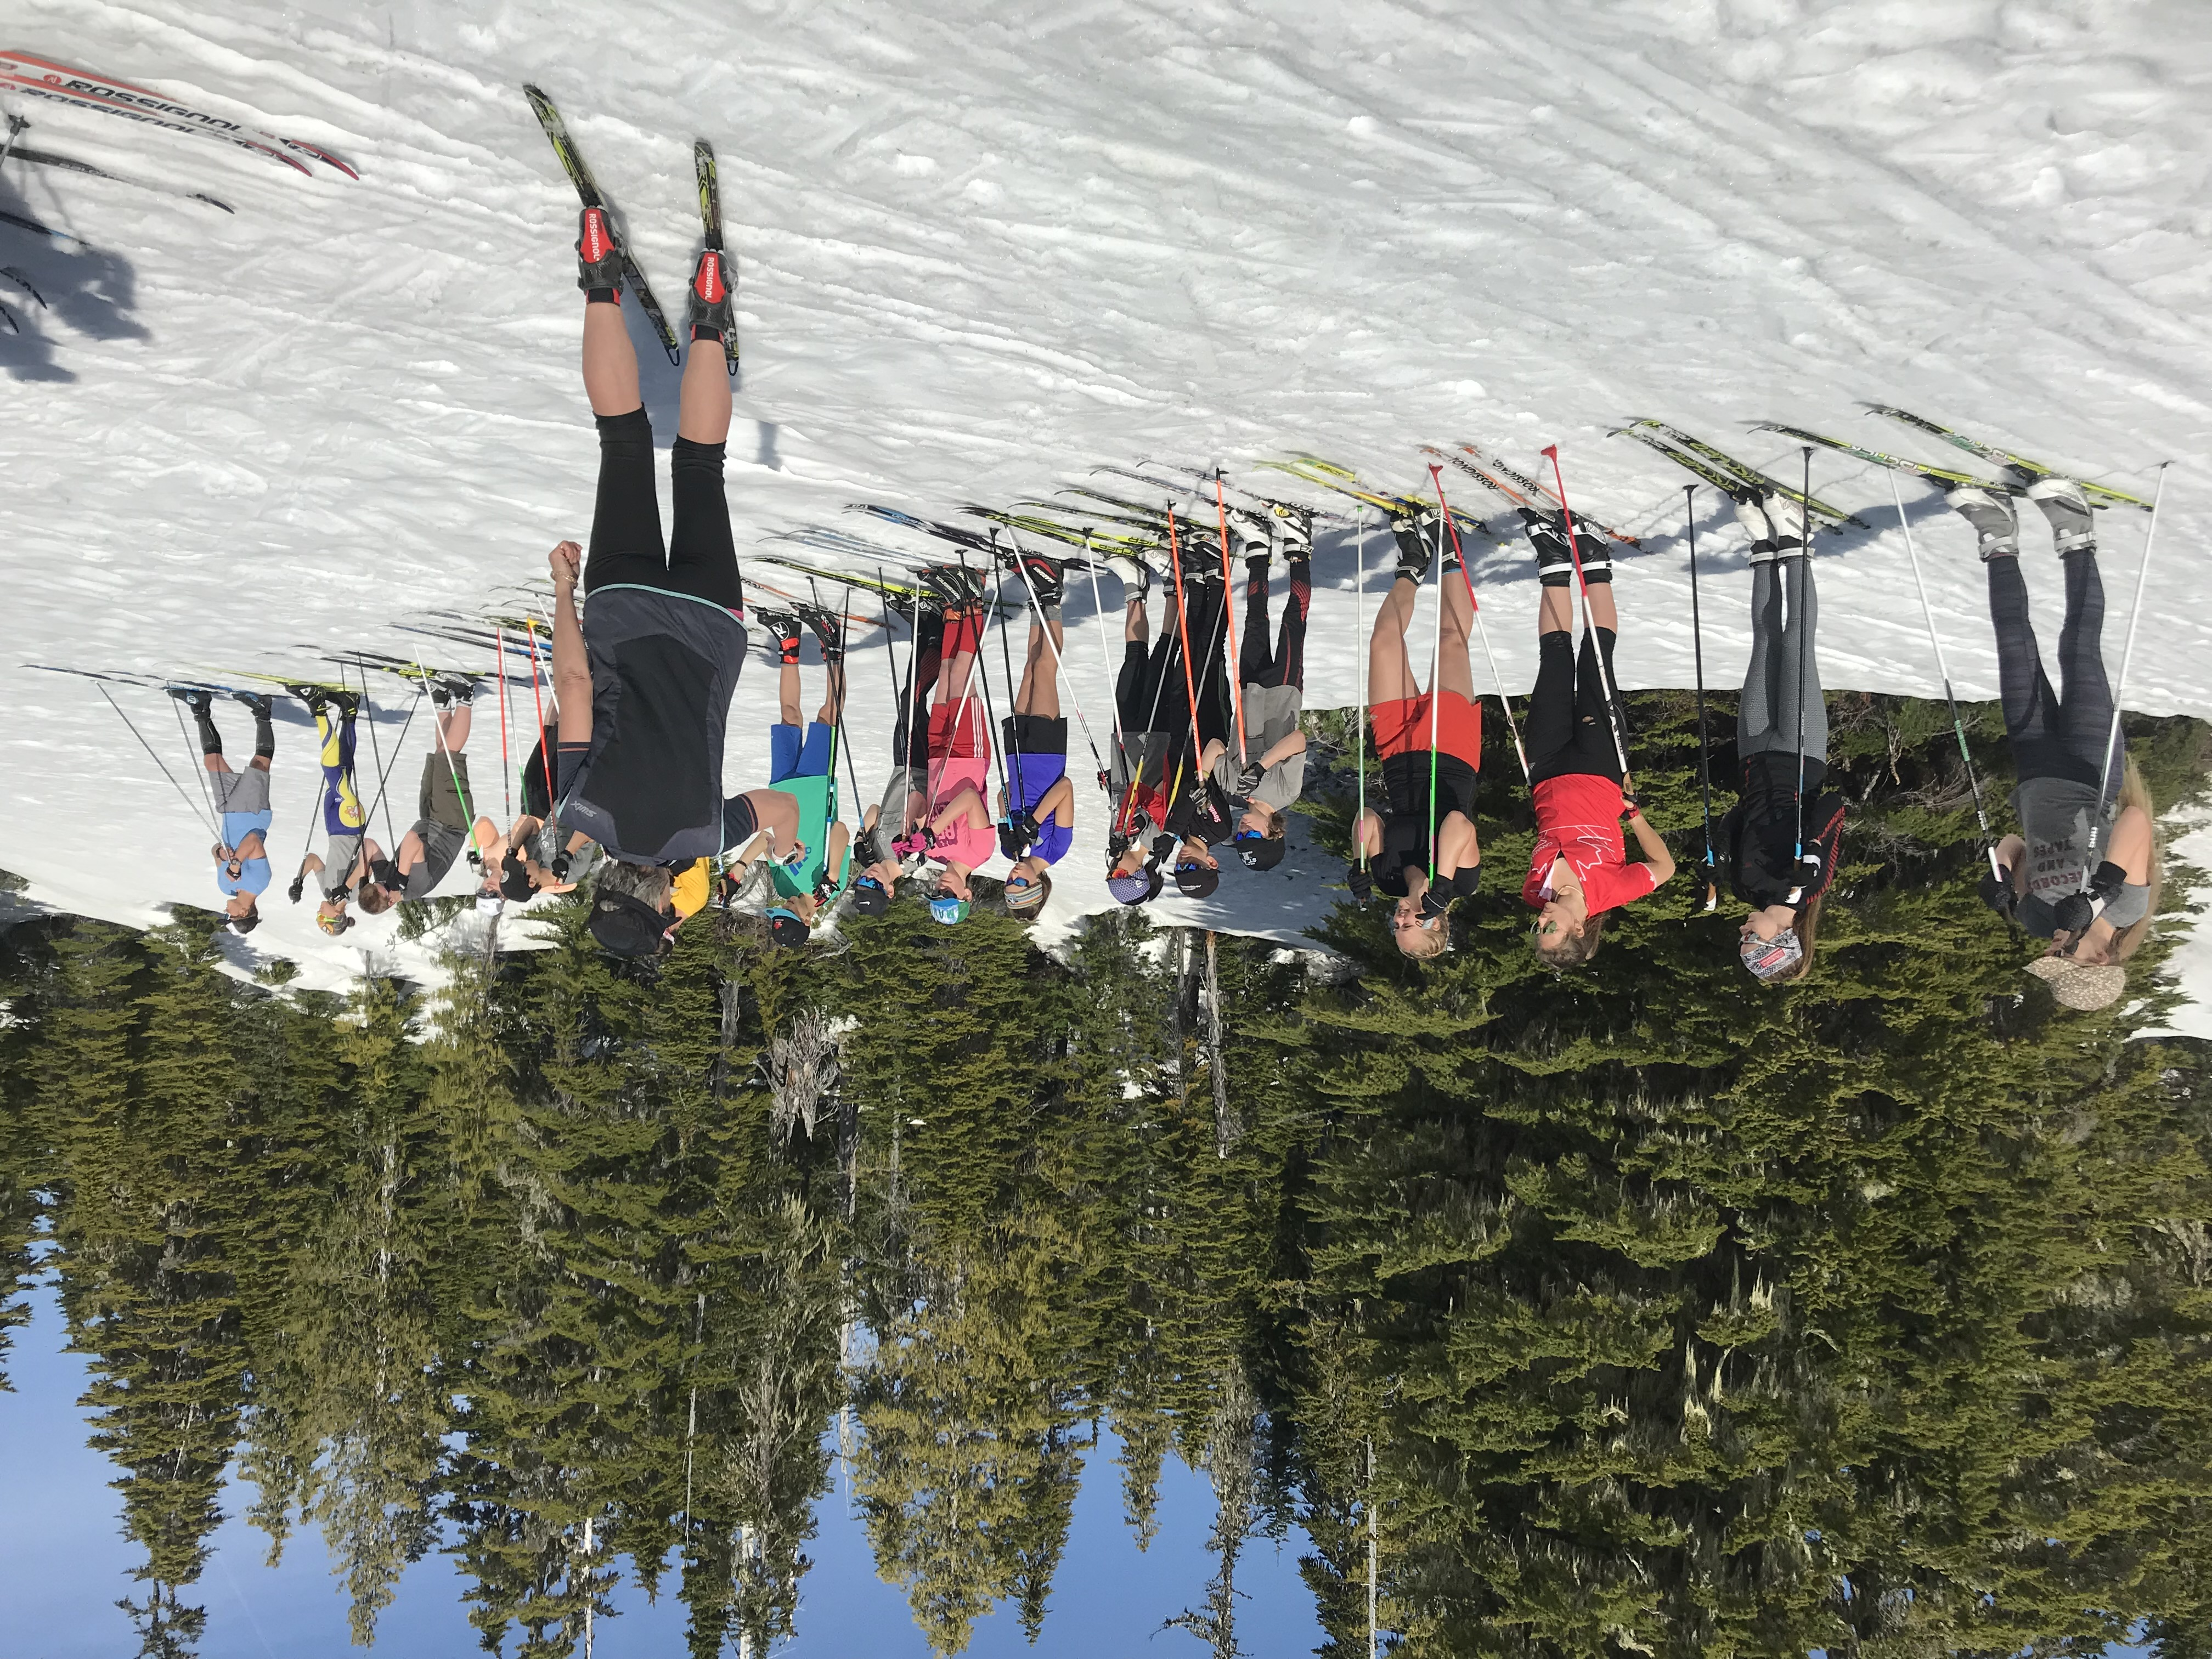 Cross country skiing coach with youth